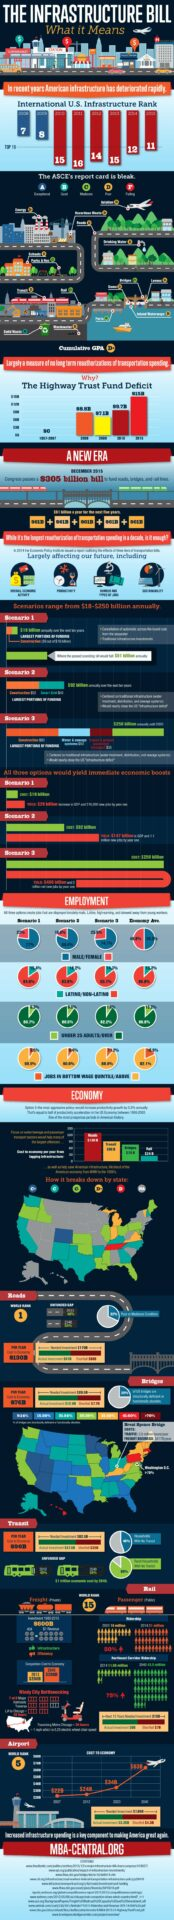 Fixing Americas Surface Transportation Act Infographic